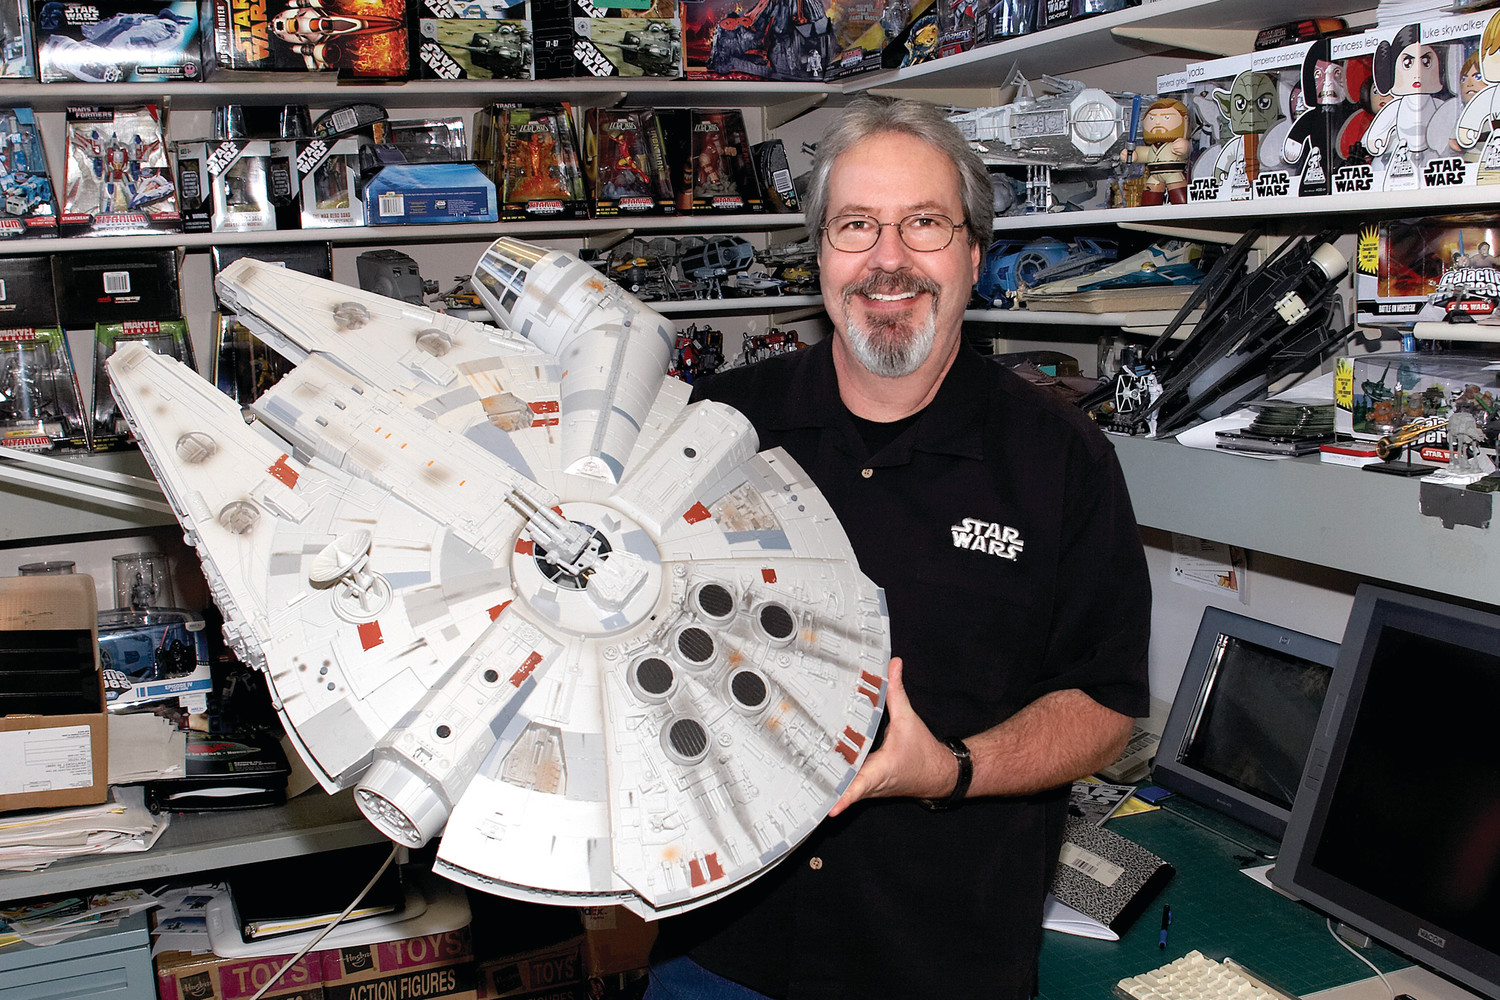 (2008) Boudreaux holds one of the Millennium Falcons that he designed in his office at Hasbro. New versions include updated paint schemes, enhanced mechanical play features, authentic light and sound effects, and even a pop-up Nerf launcher for The Force Awakens version.